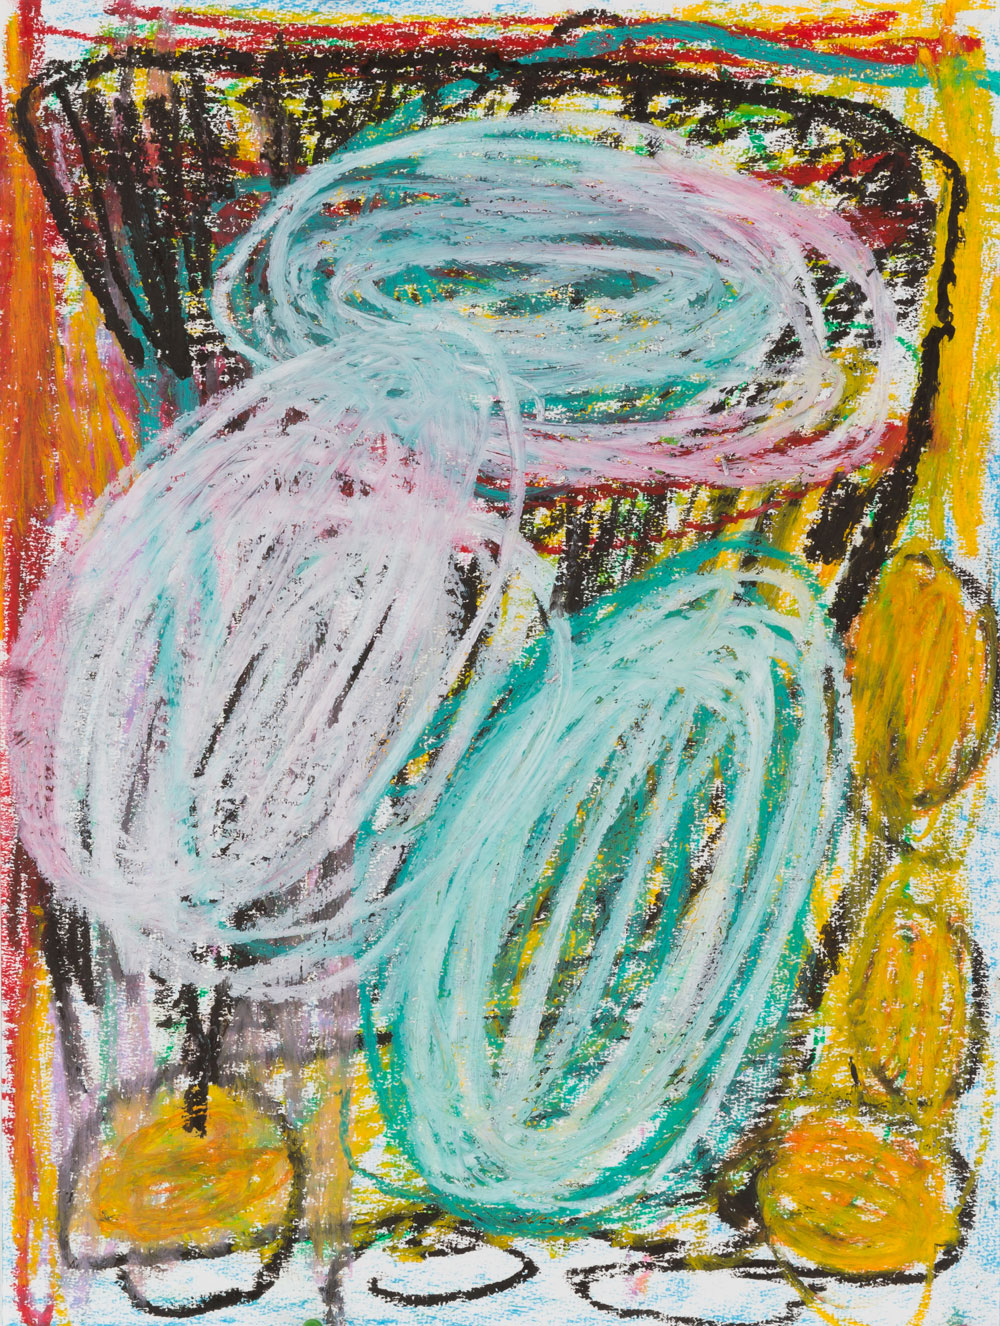 Crazy  , oil pastel on paper, 17x14 in. ©Denise Gale 2016